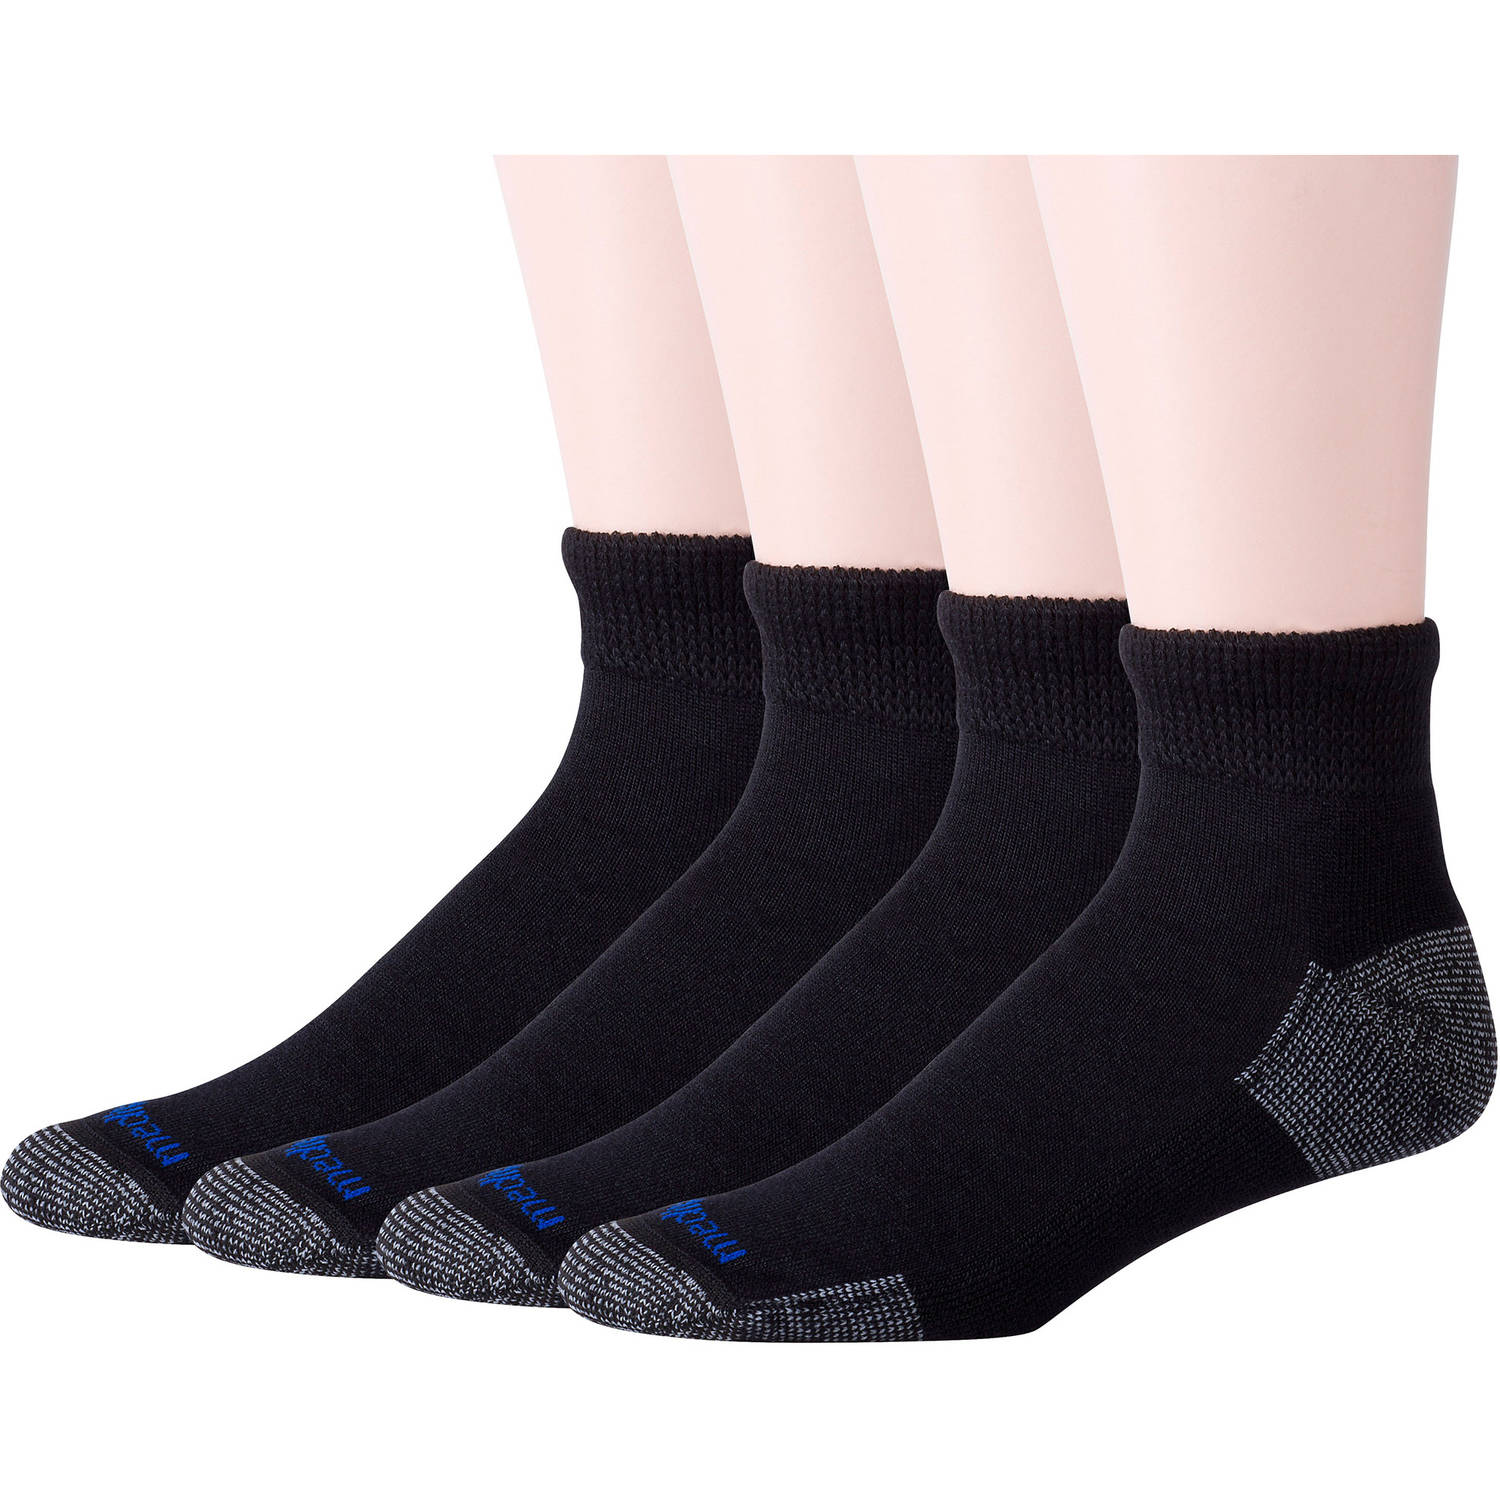 Men's Diabetic Nanoglide Quarter Socks with Non-Binding Top Value Pack, 4 Pairs